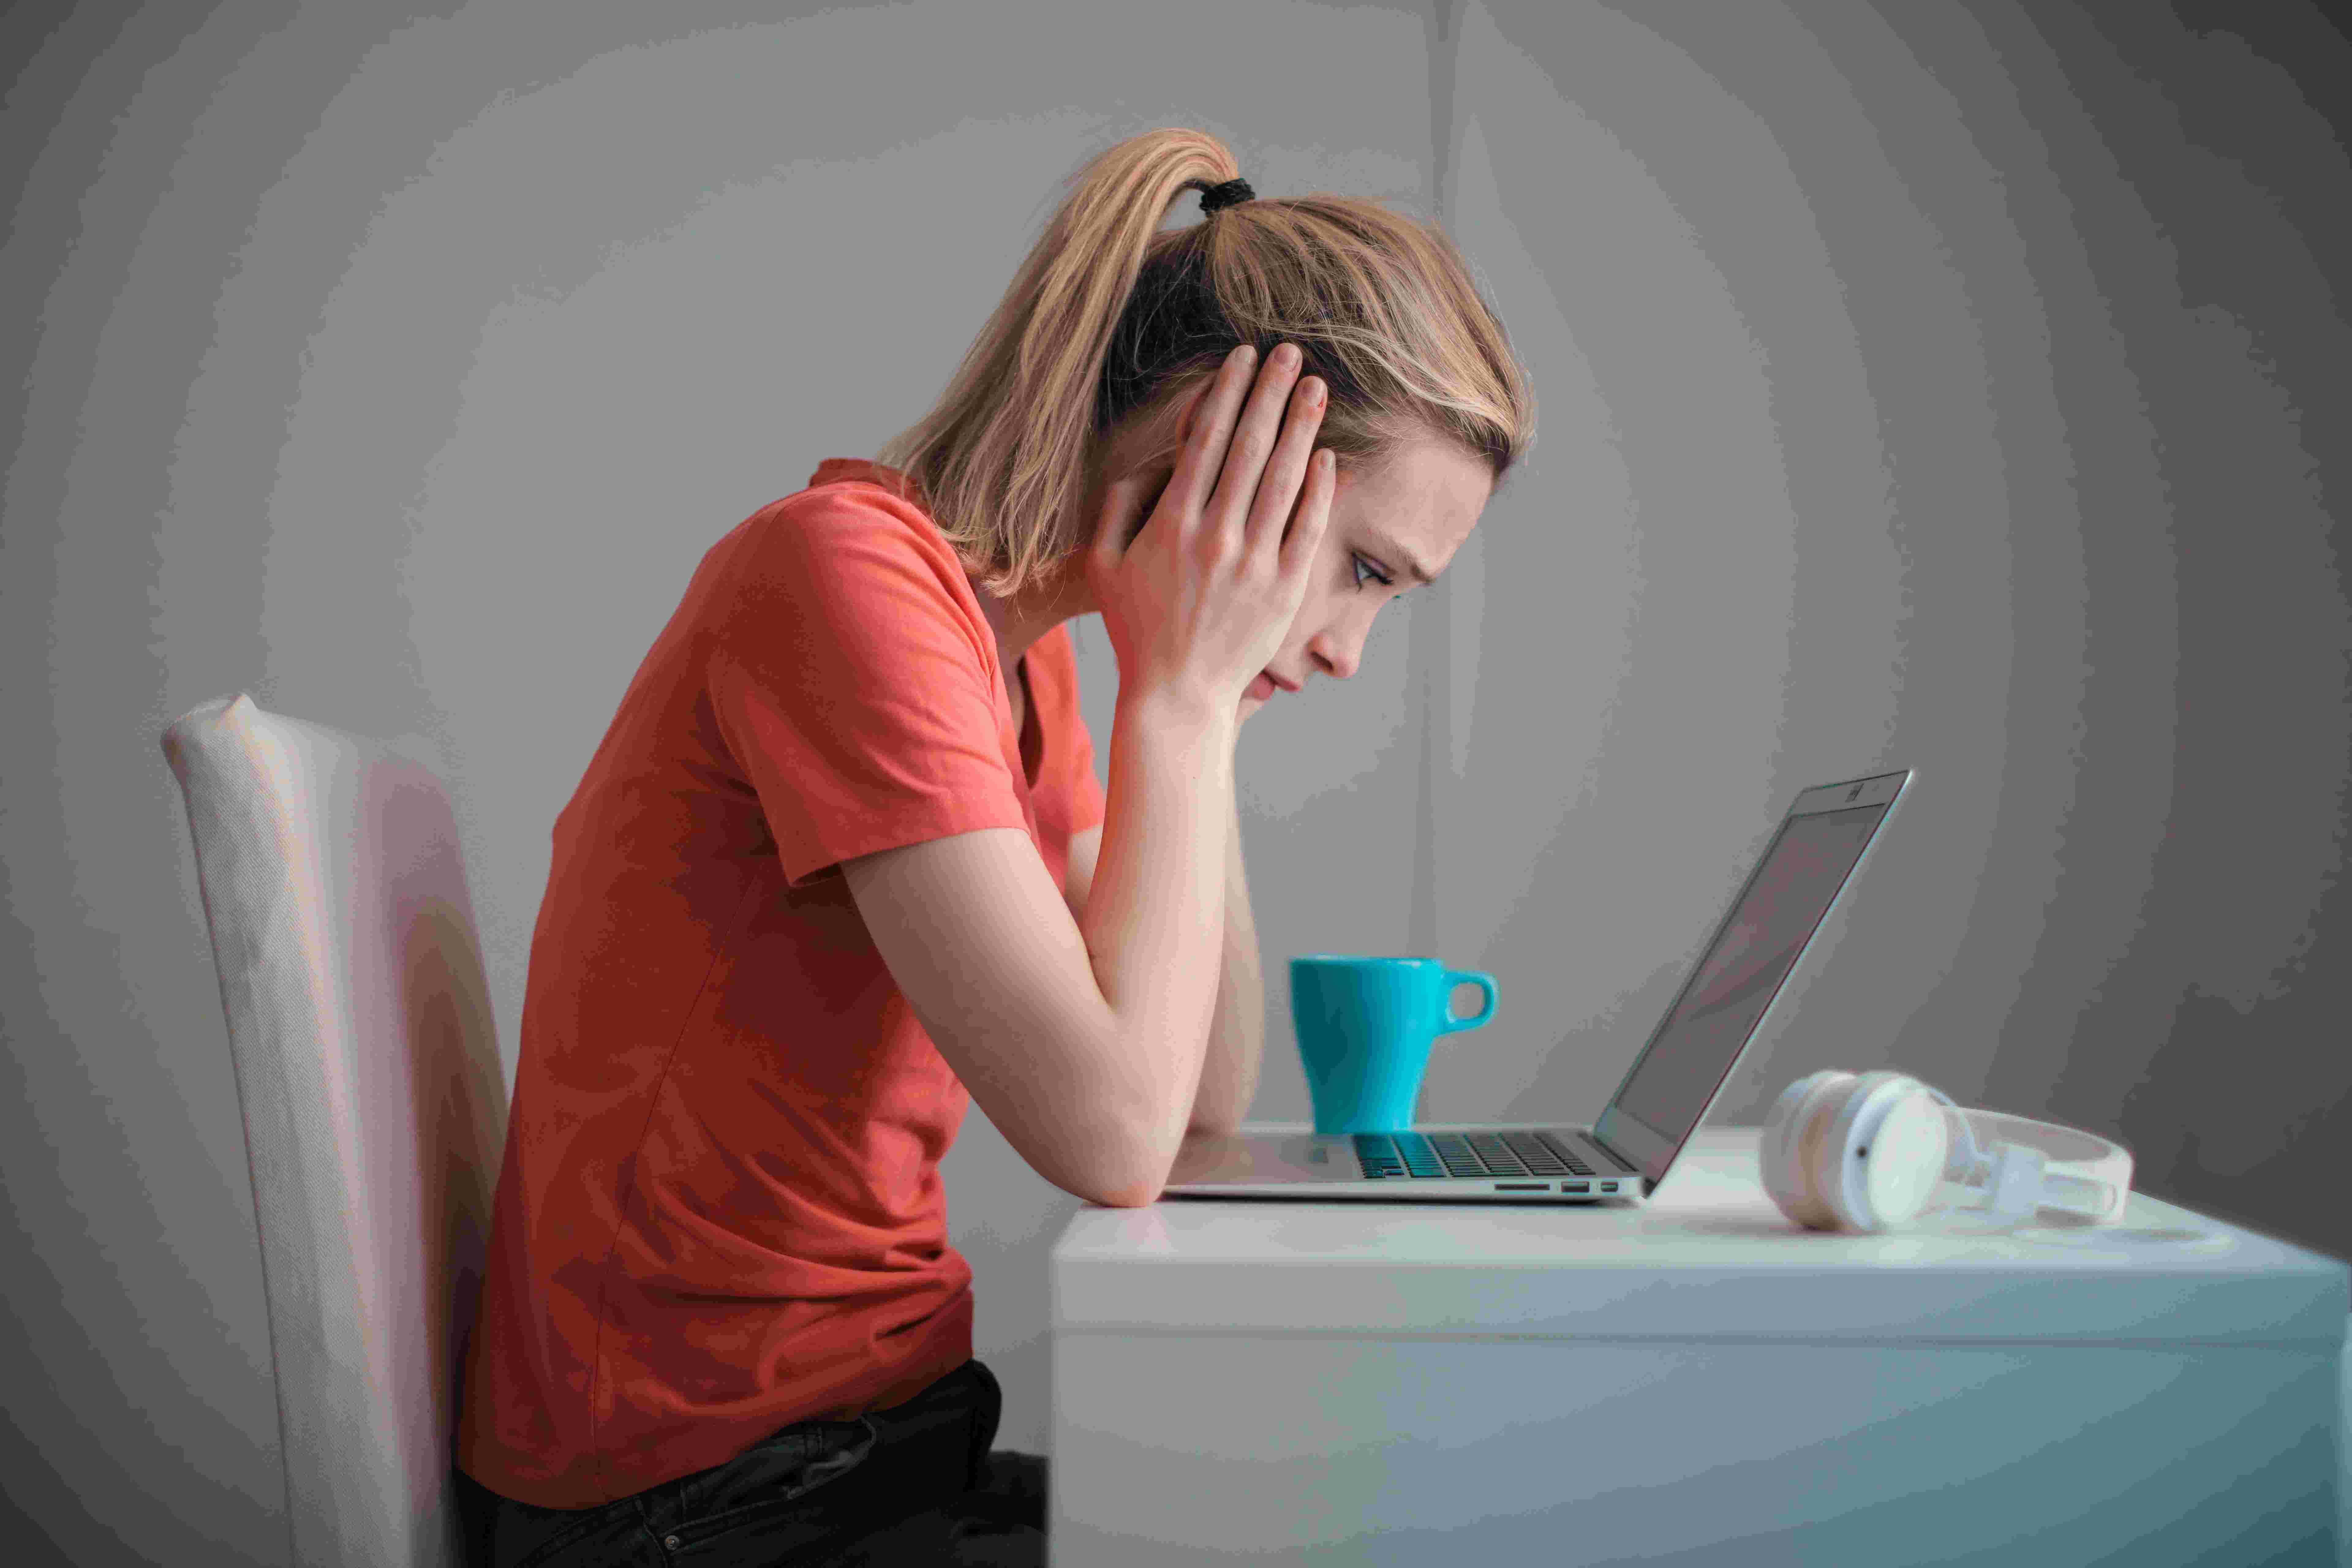 A girl in sad mood sitting in front of her laptop